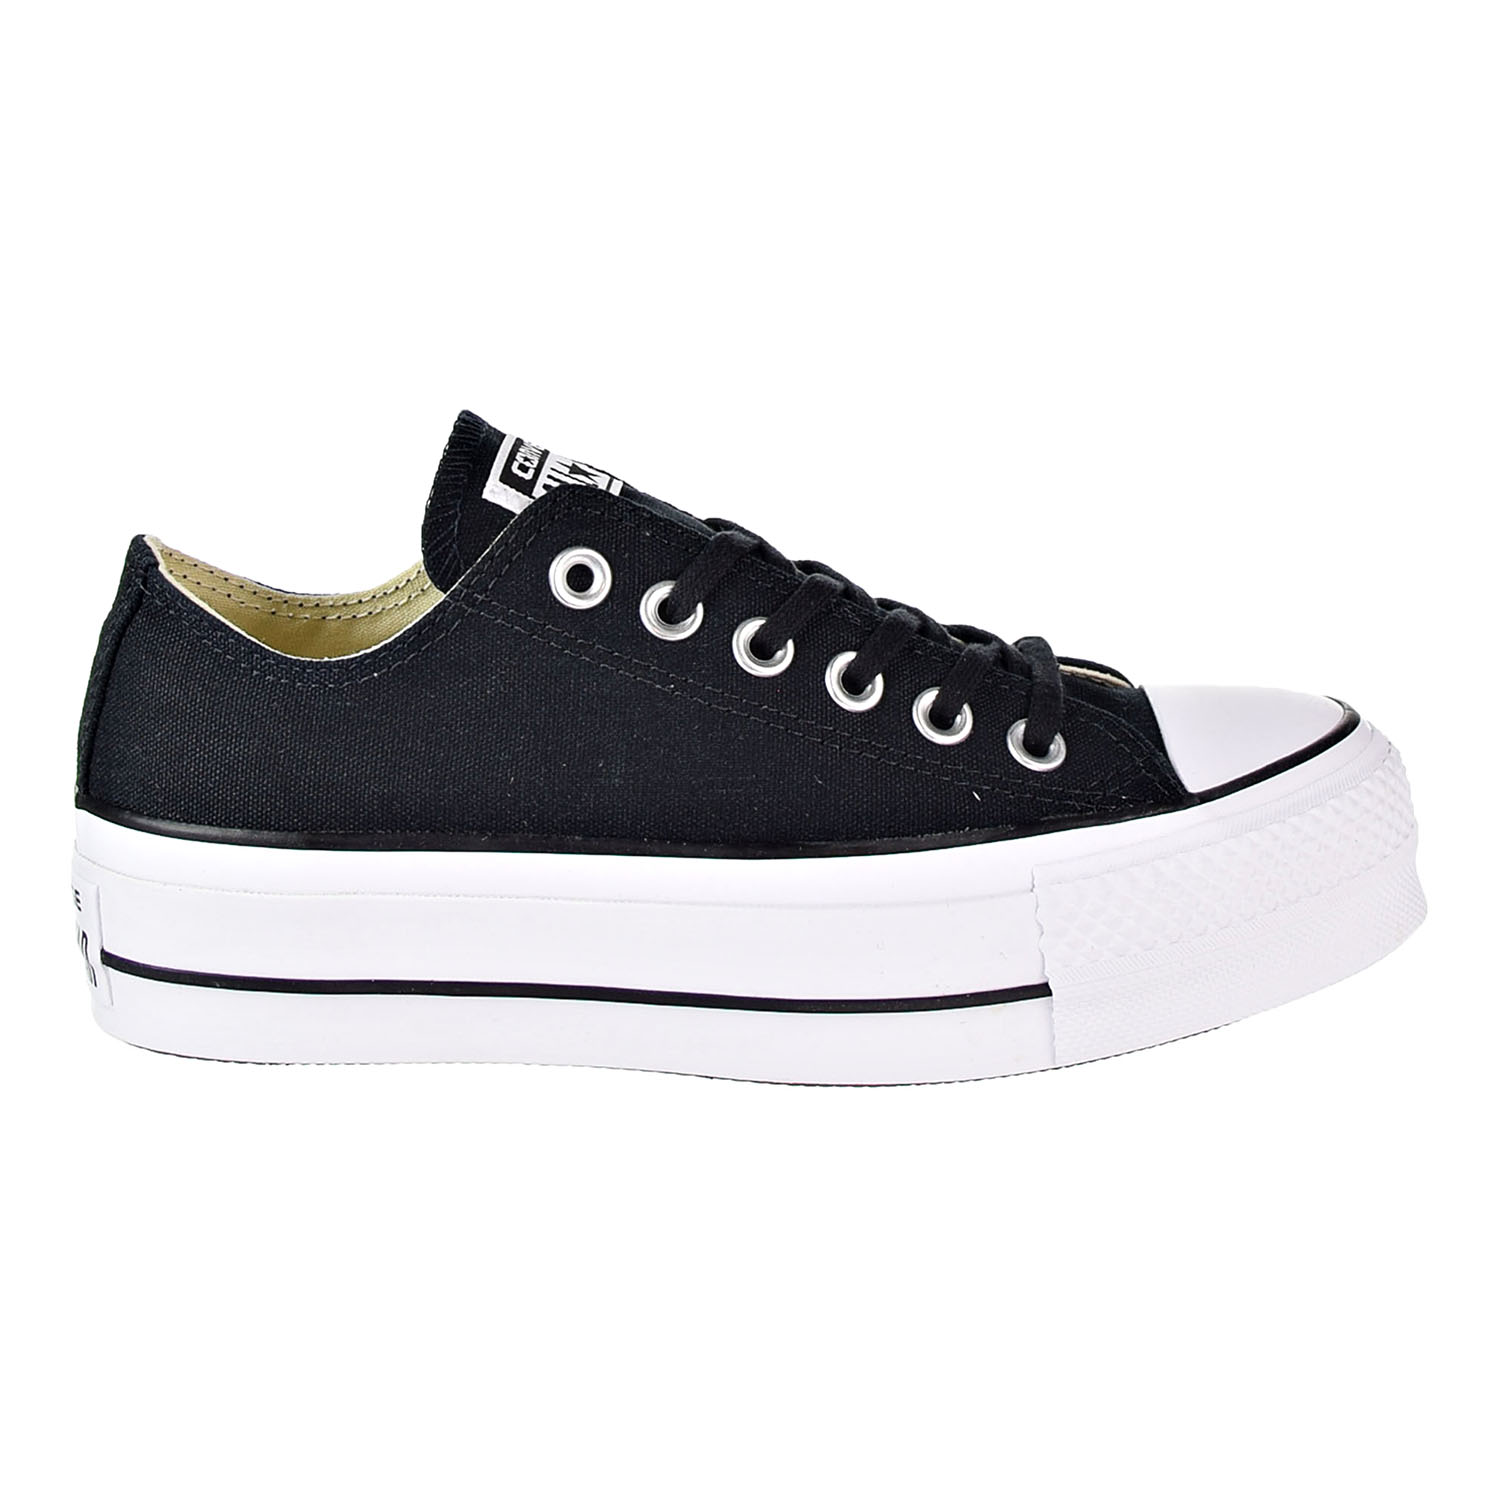 Ladies Blanco Converse Chuck Taylor Coupon For A4a01 9ed37